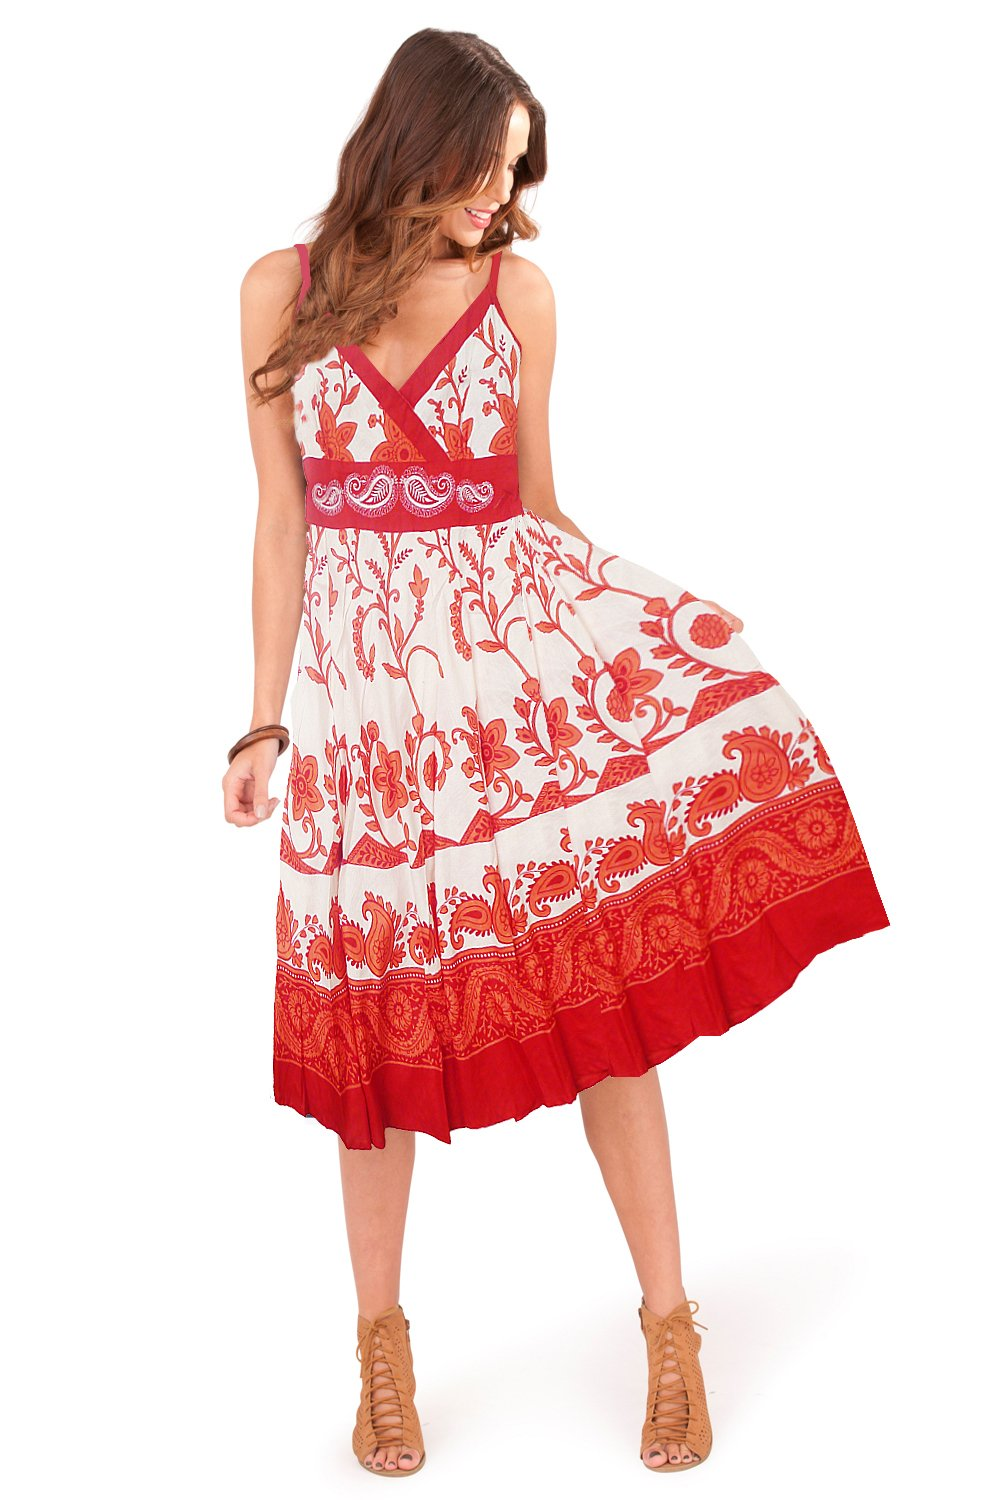 Ladies 100% Cotton Swirl/Floral Print Strappy Mid Length Summer Dress with Crossover V Neck, Red or Blue Pistachio d726